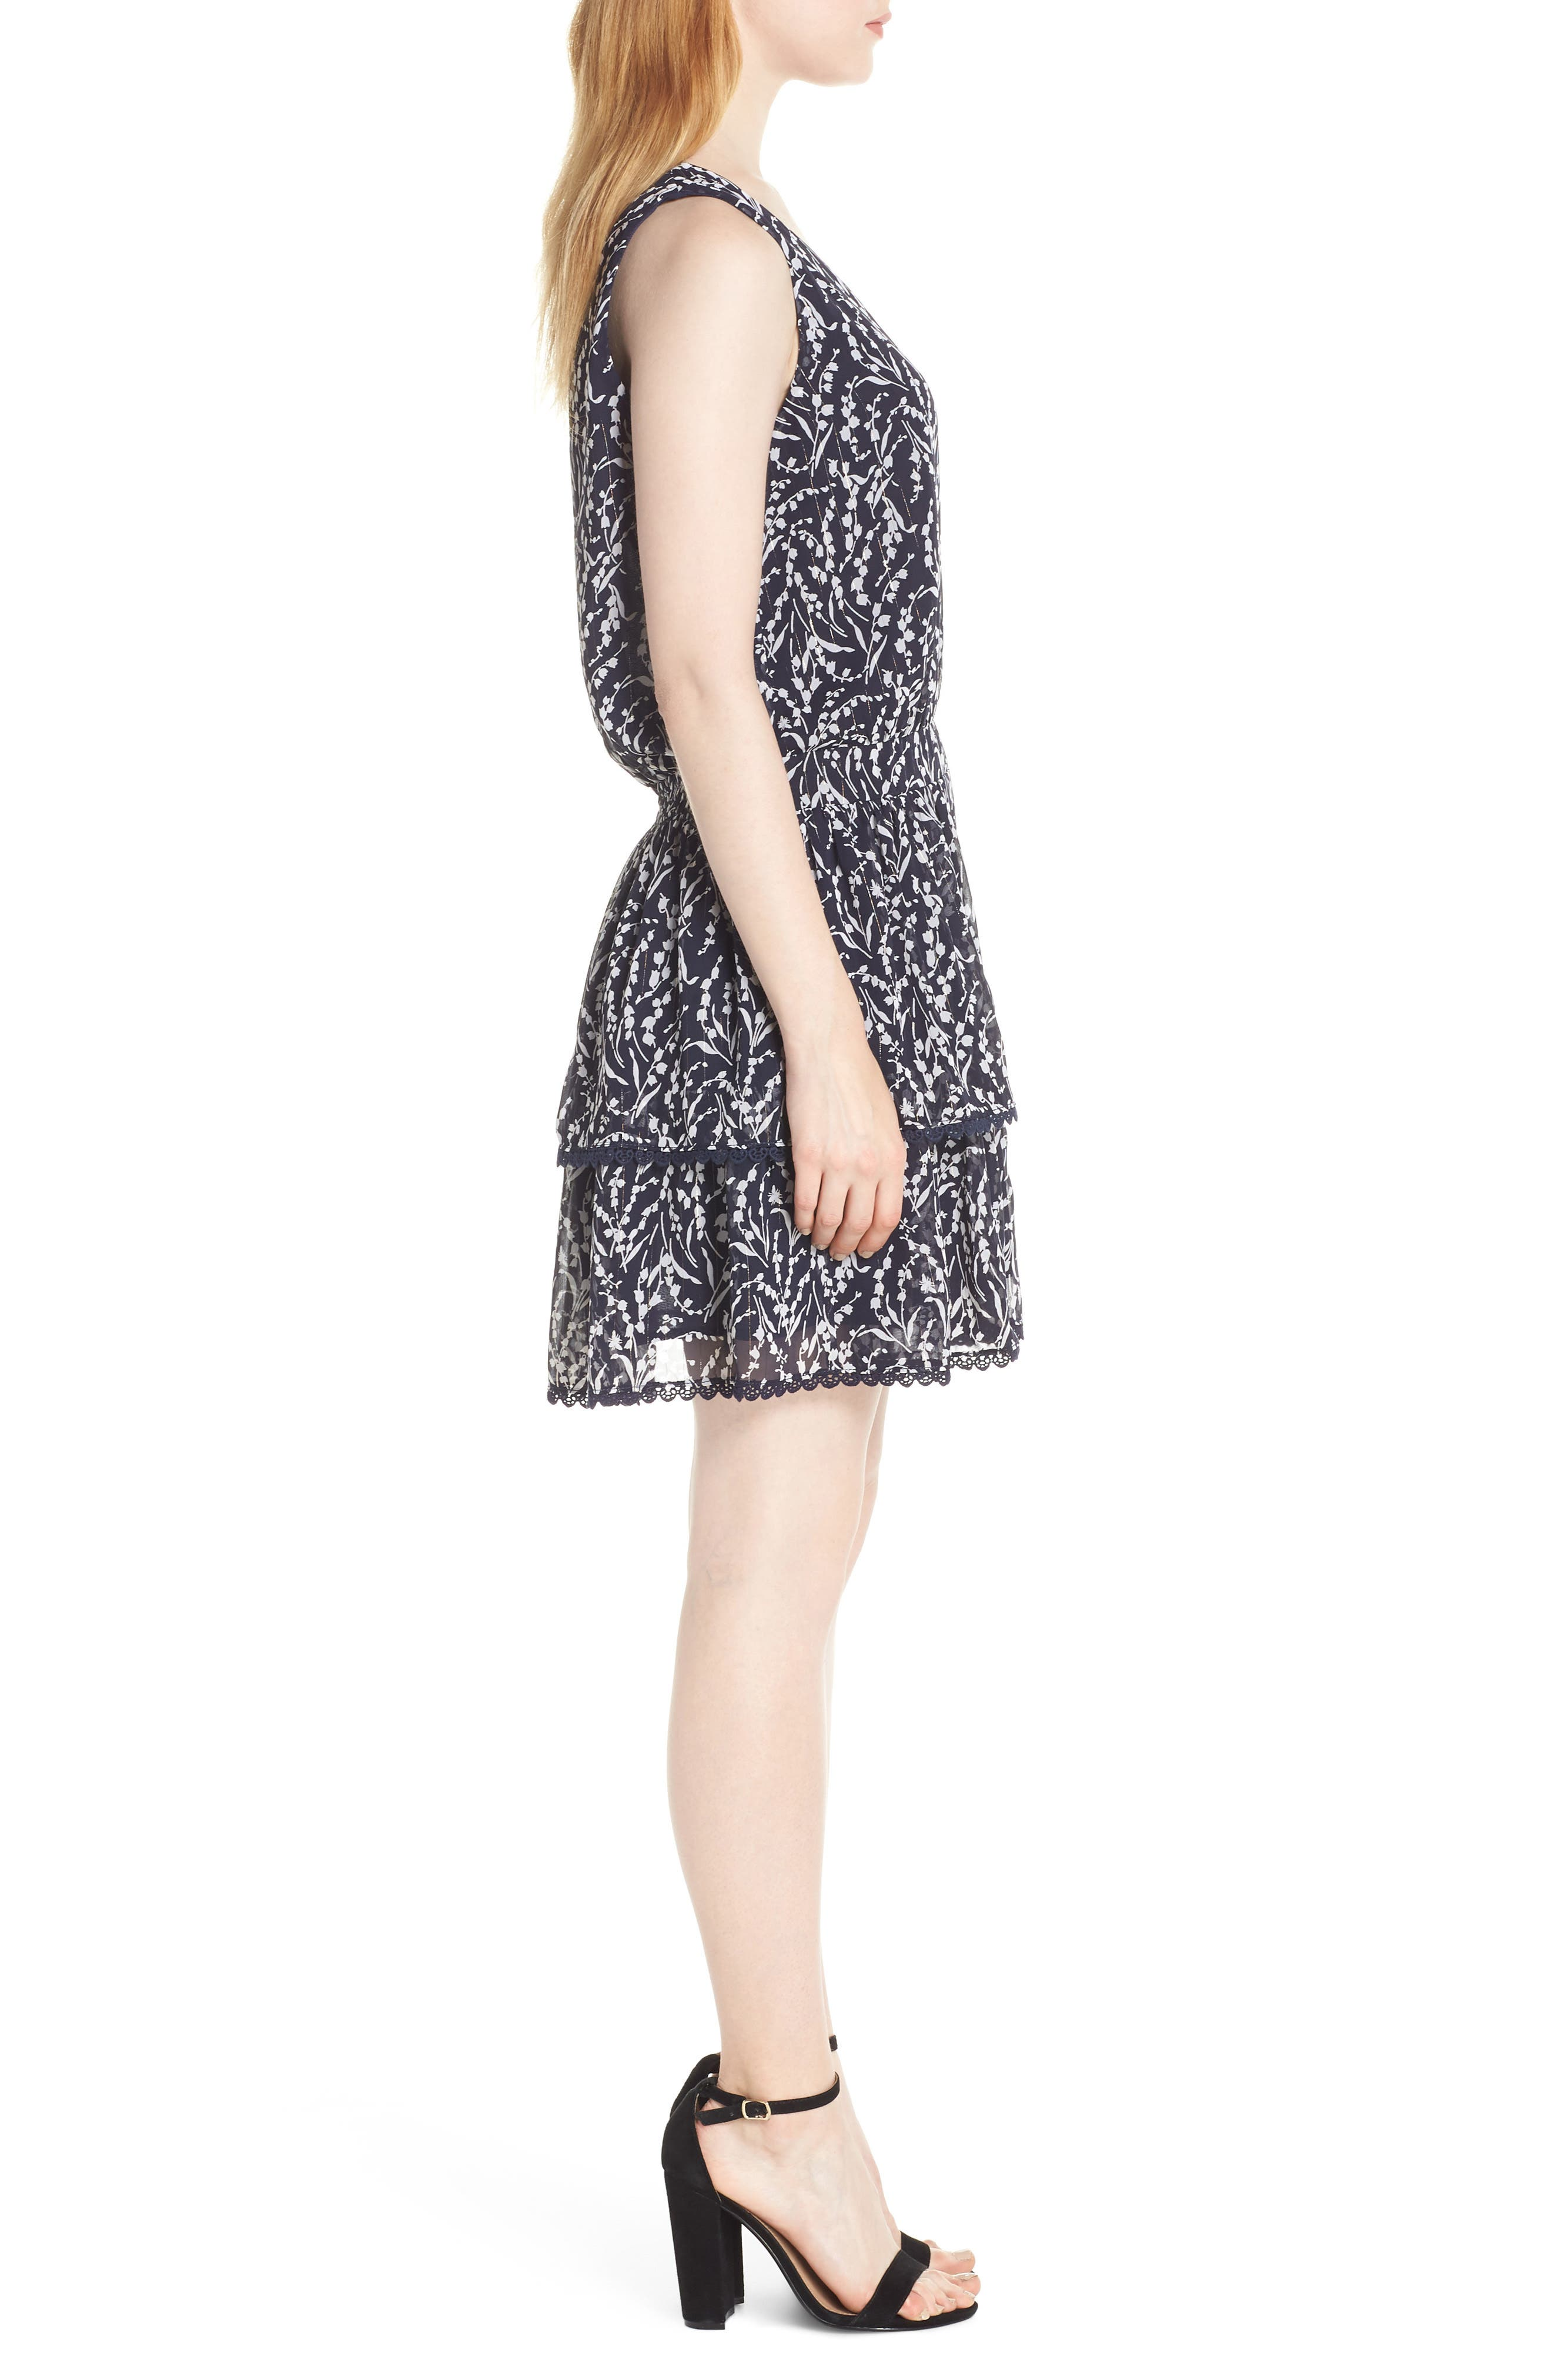 19 COOPER, Tiered Floral Sleeveless Dress, Alternate thumbnail 4, color, NAVY/ WHITE